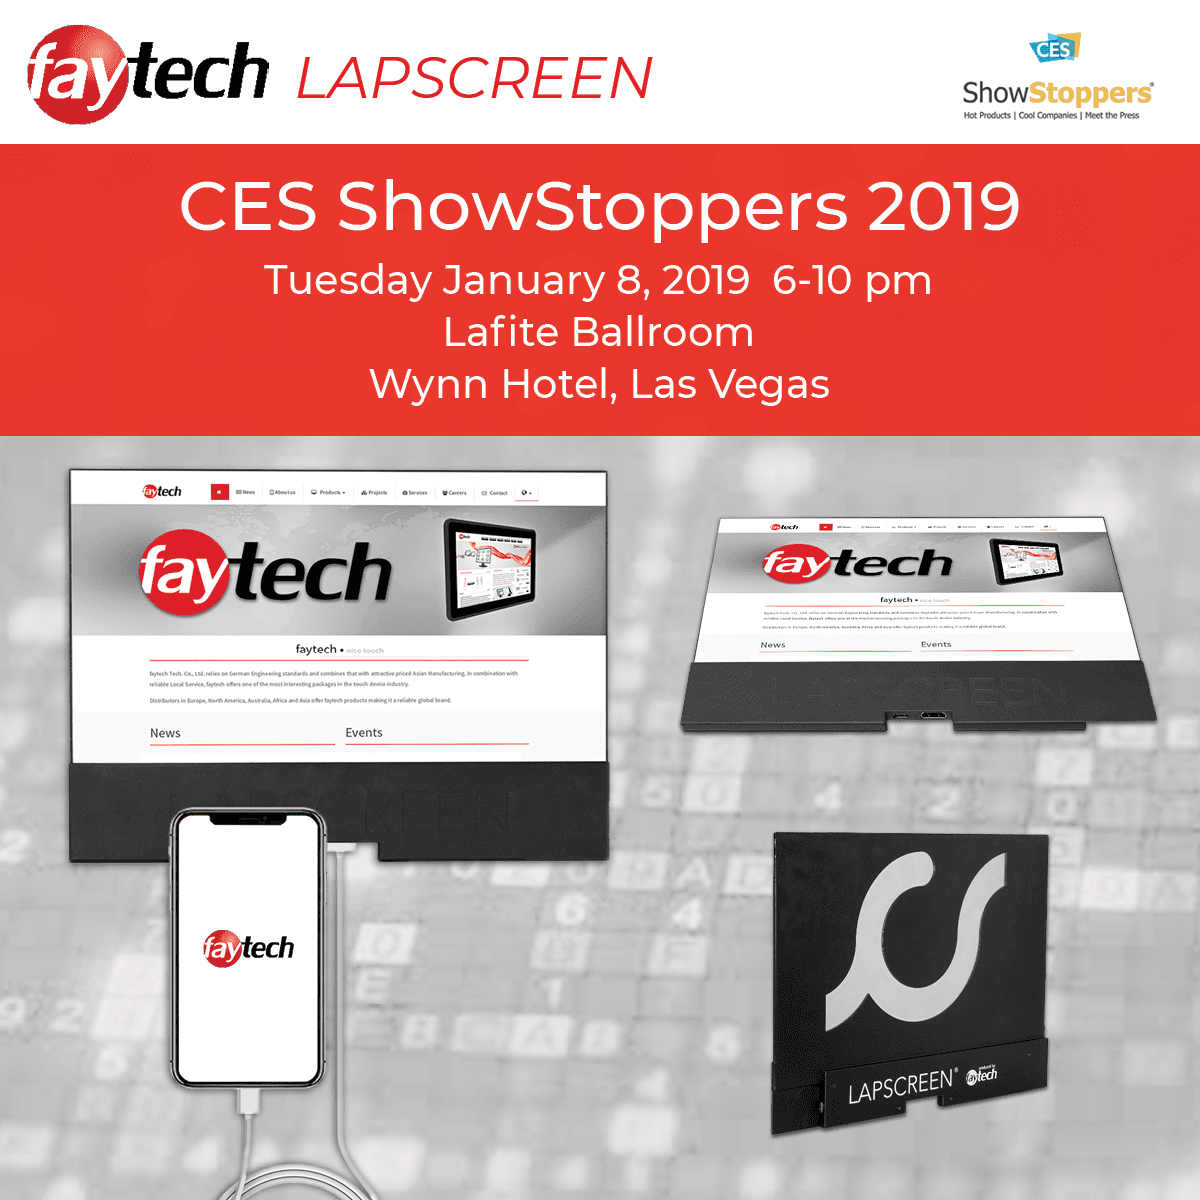 CES ShowStoppers 2019